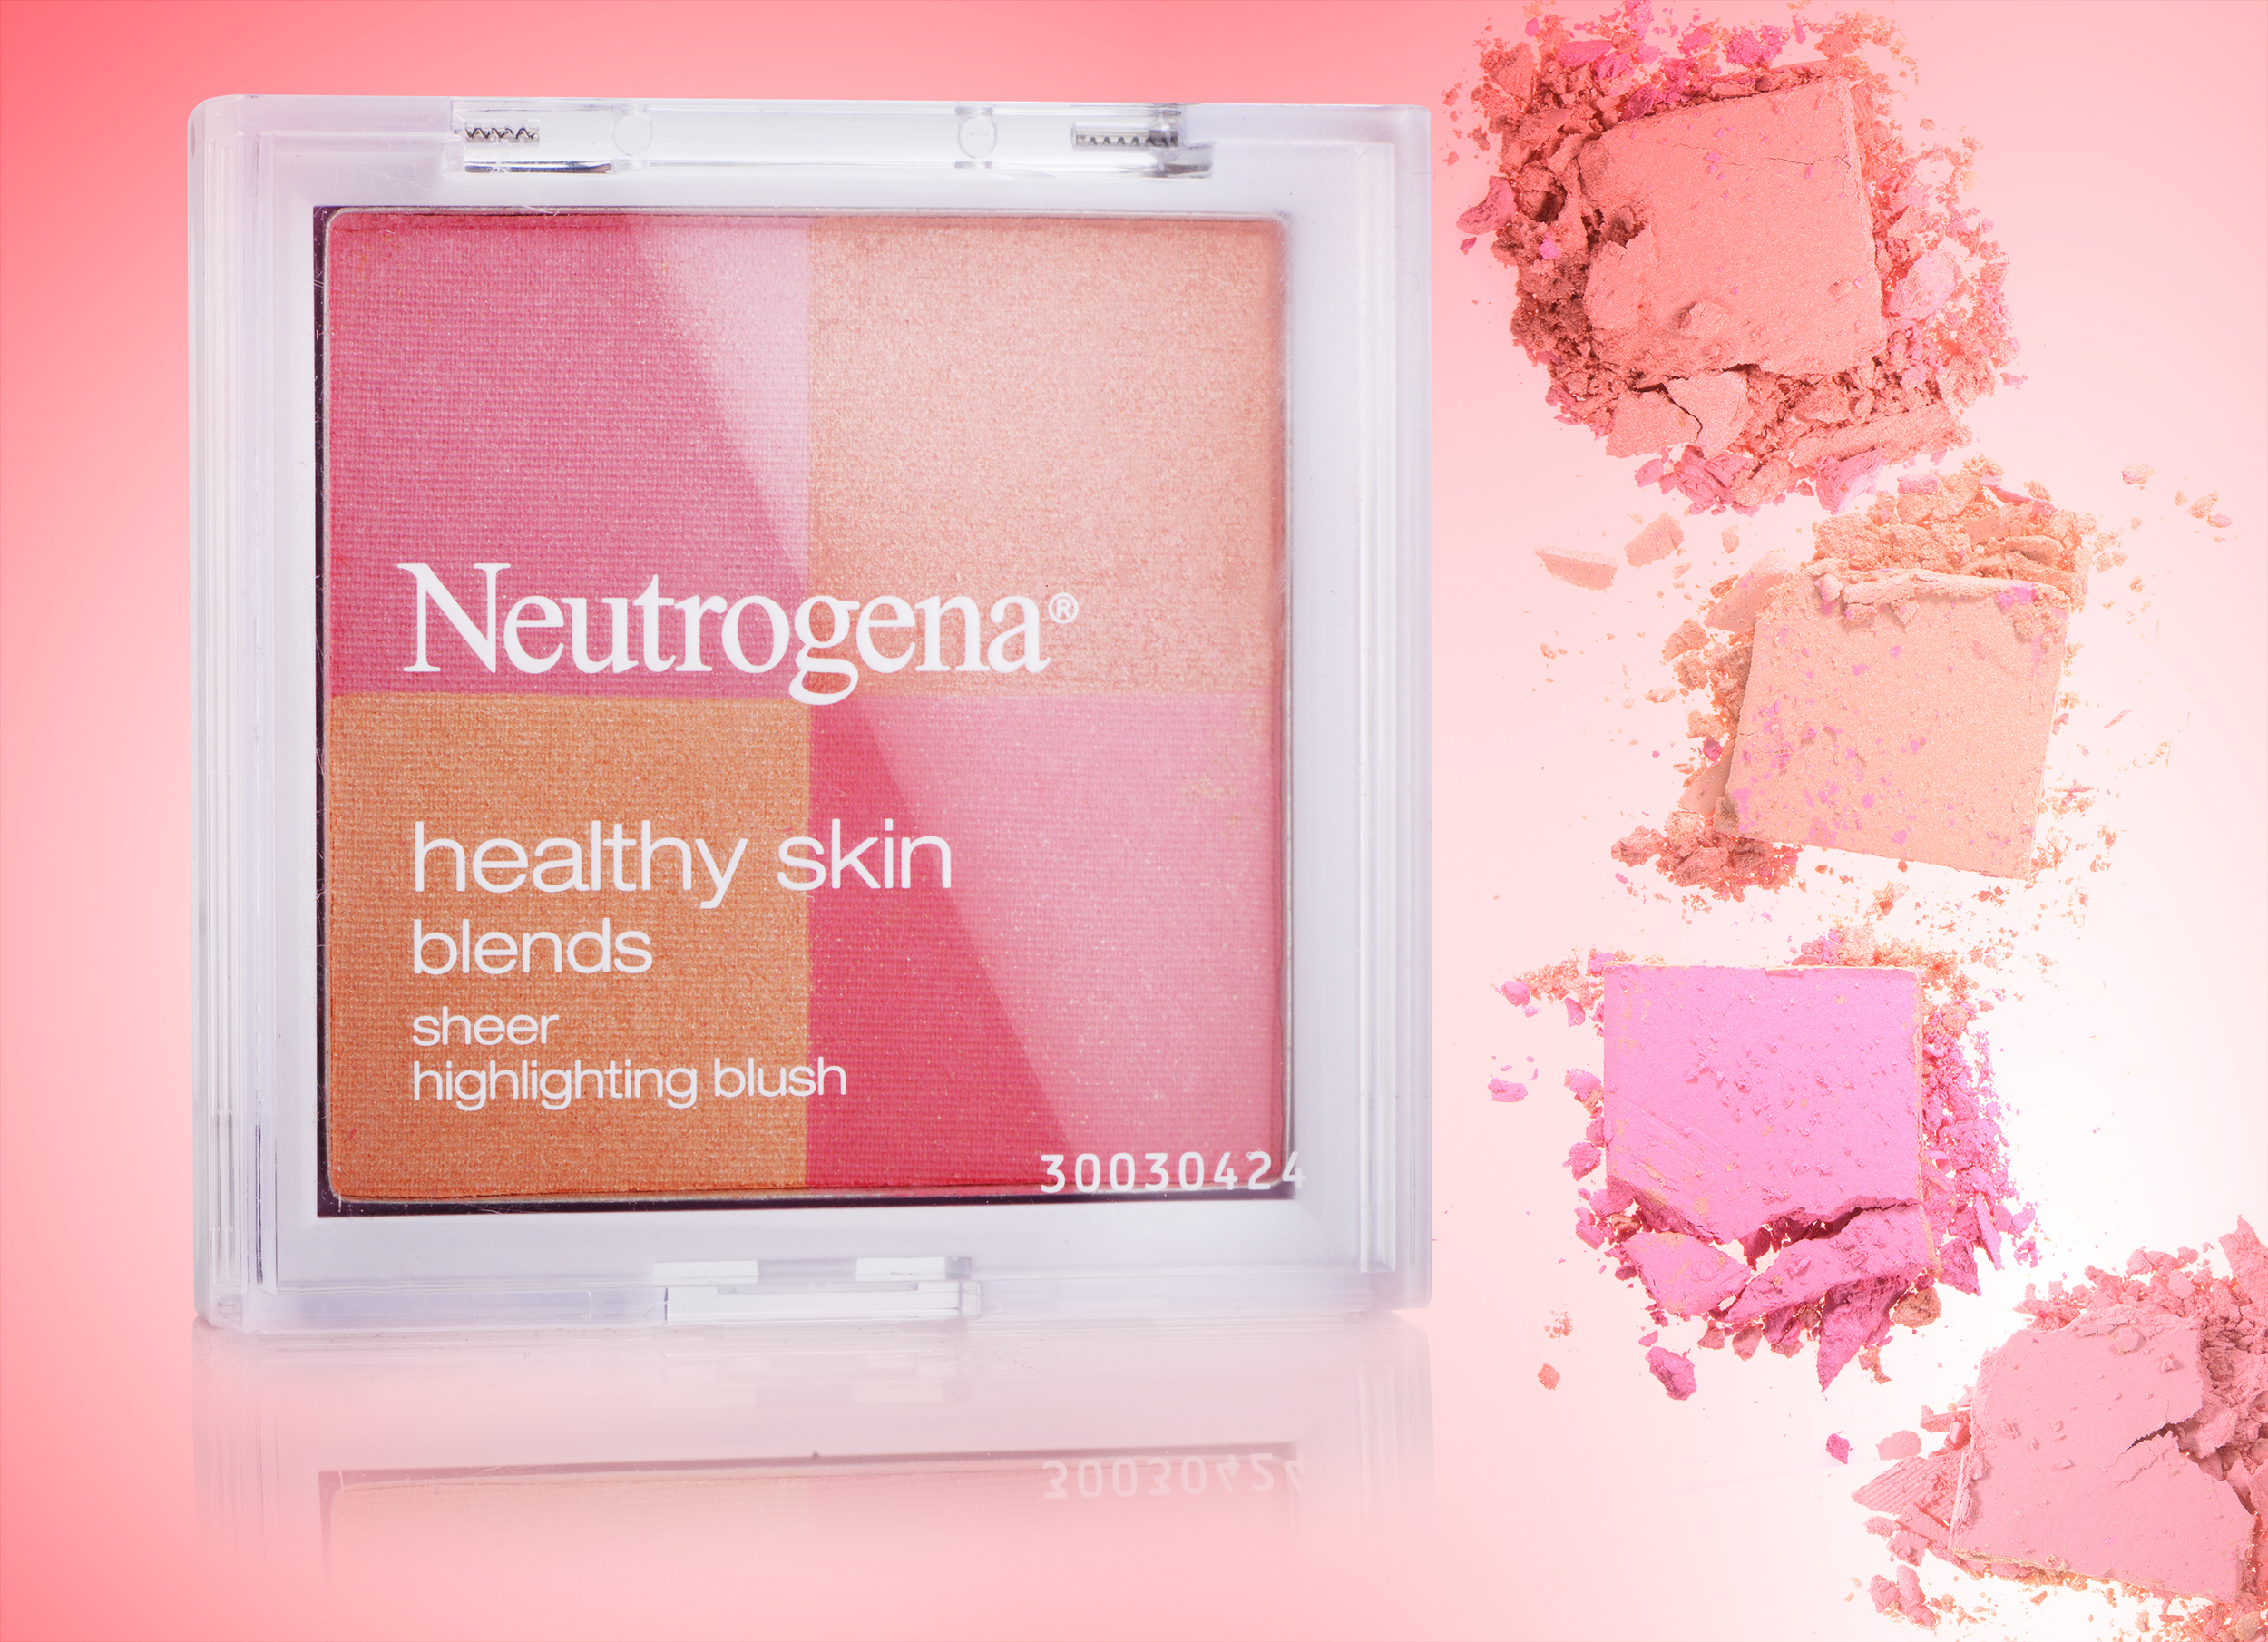 Neutrogena-Highlight.jpg